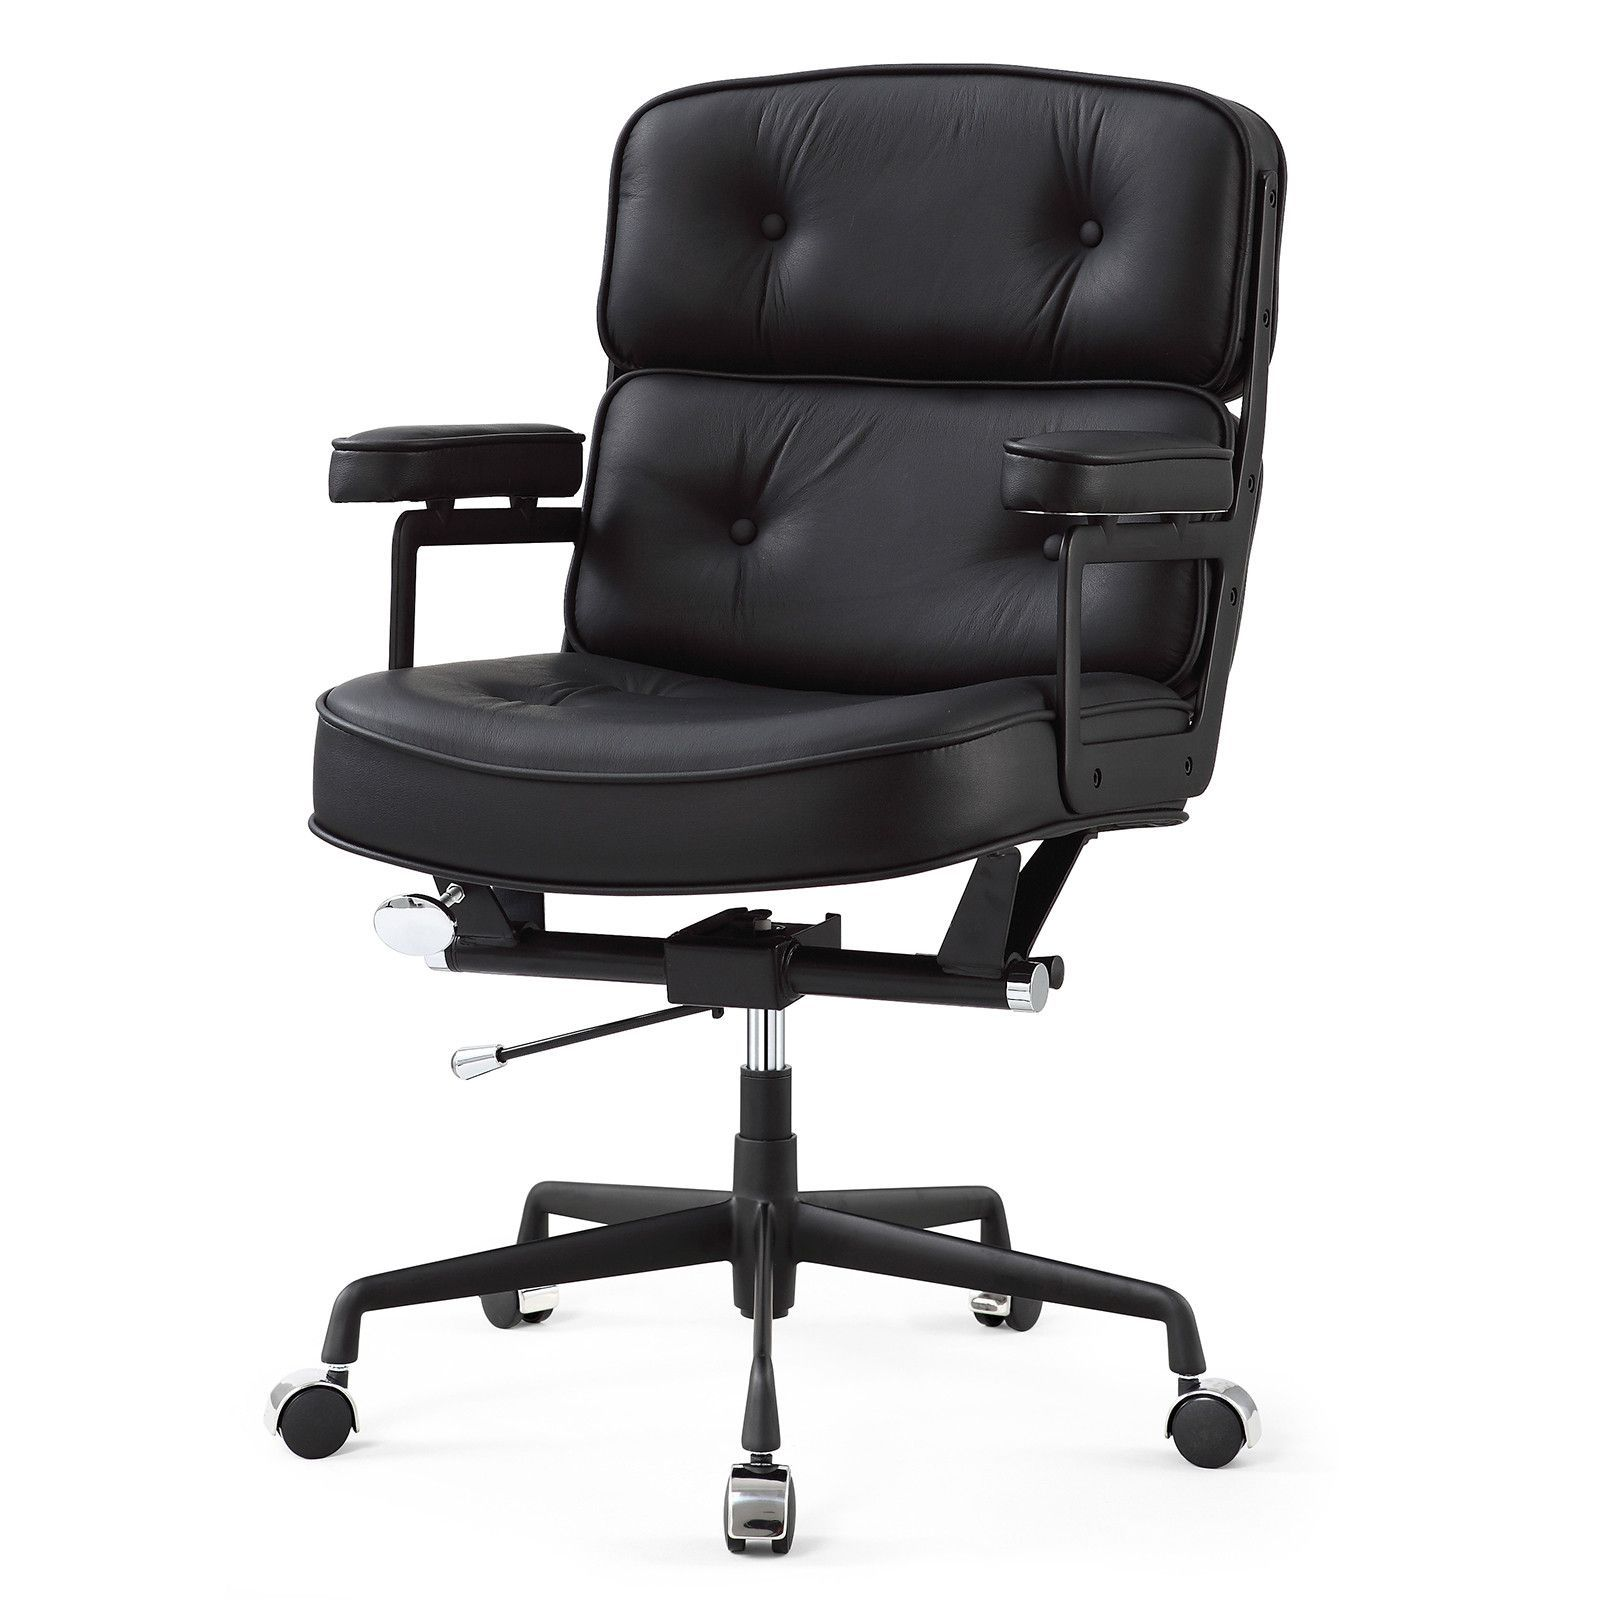 M340 Office Chair In Italian Leather (Color Options)